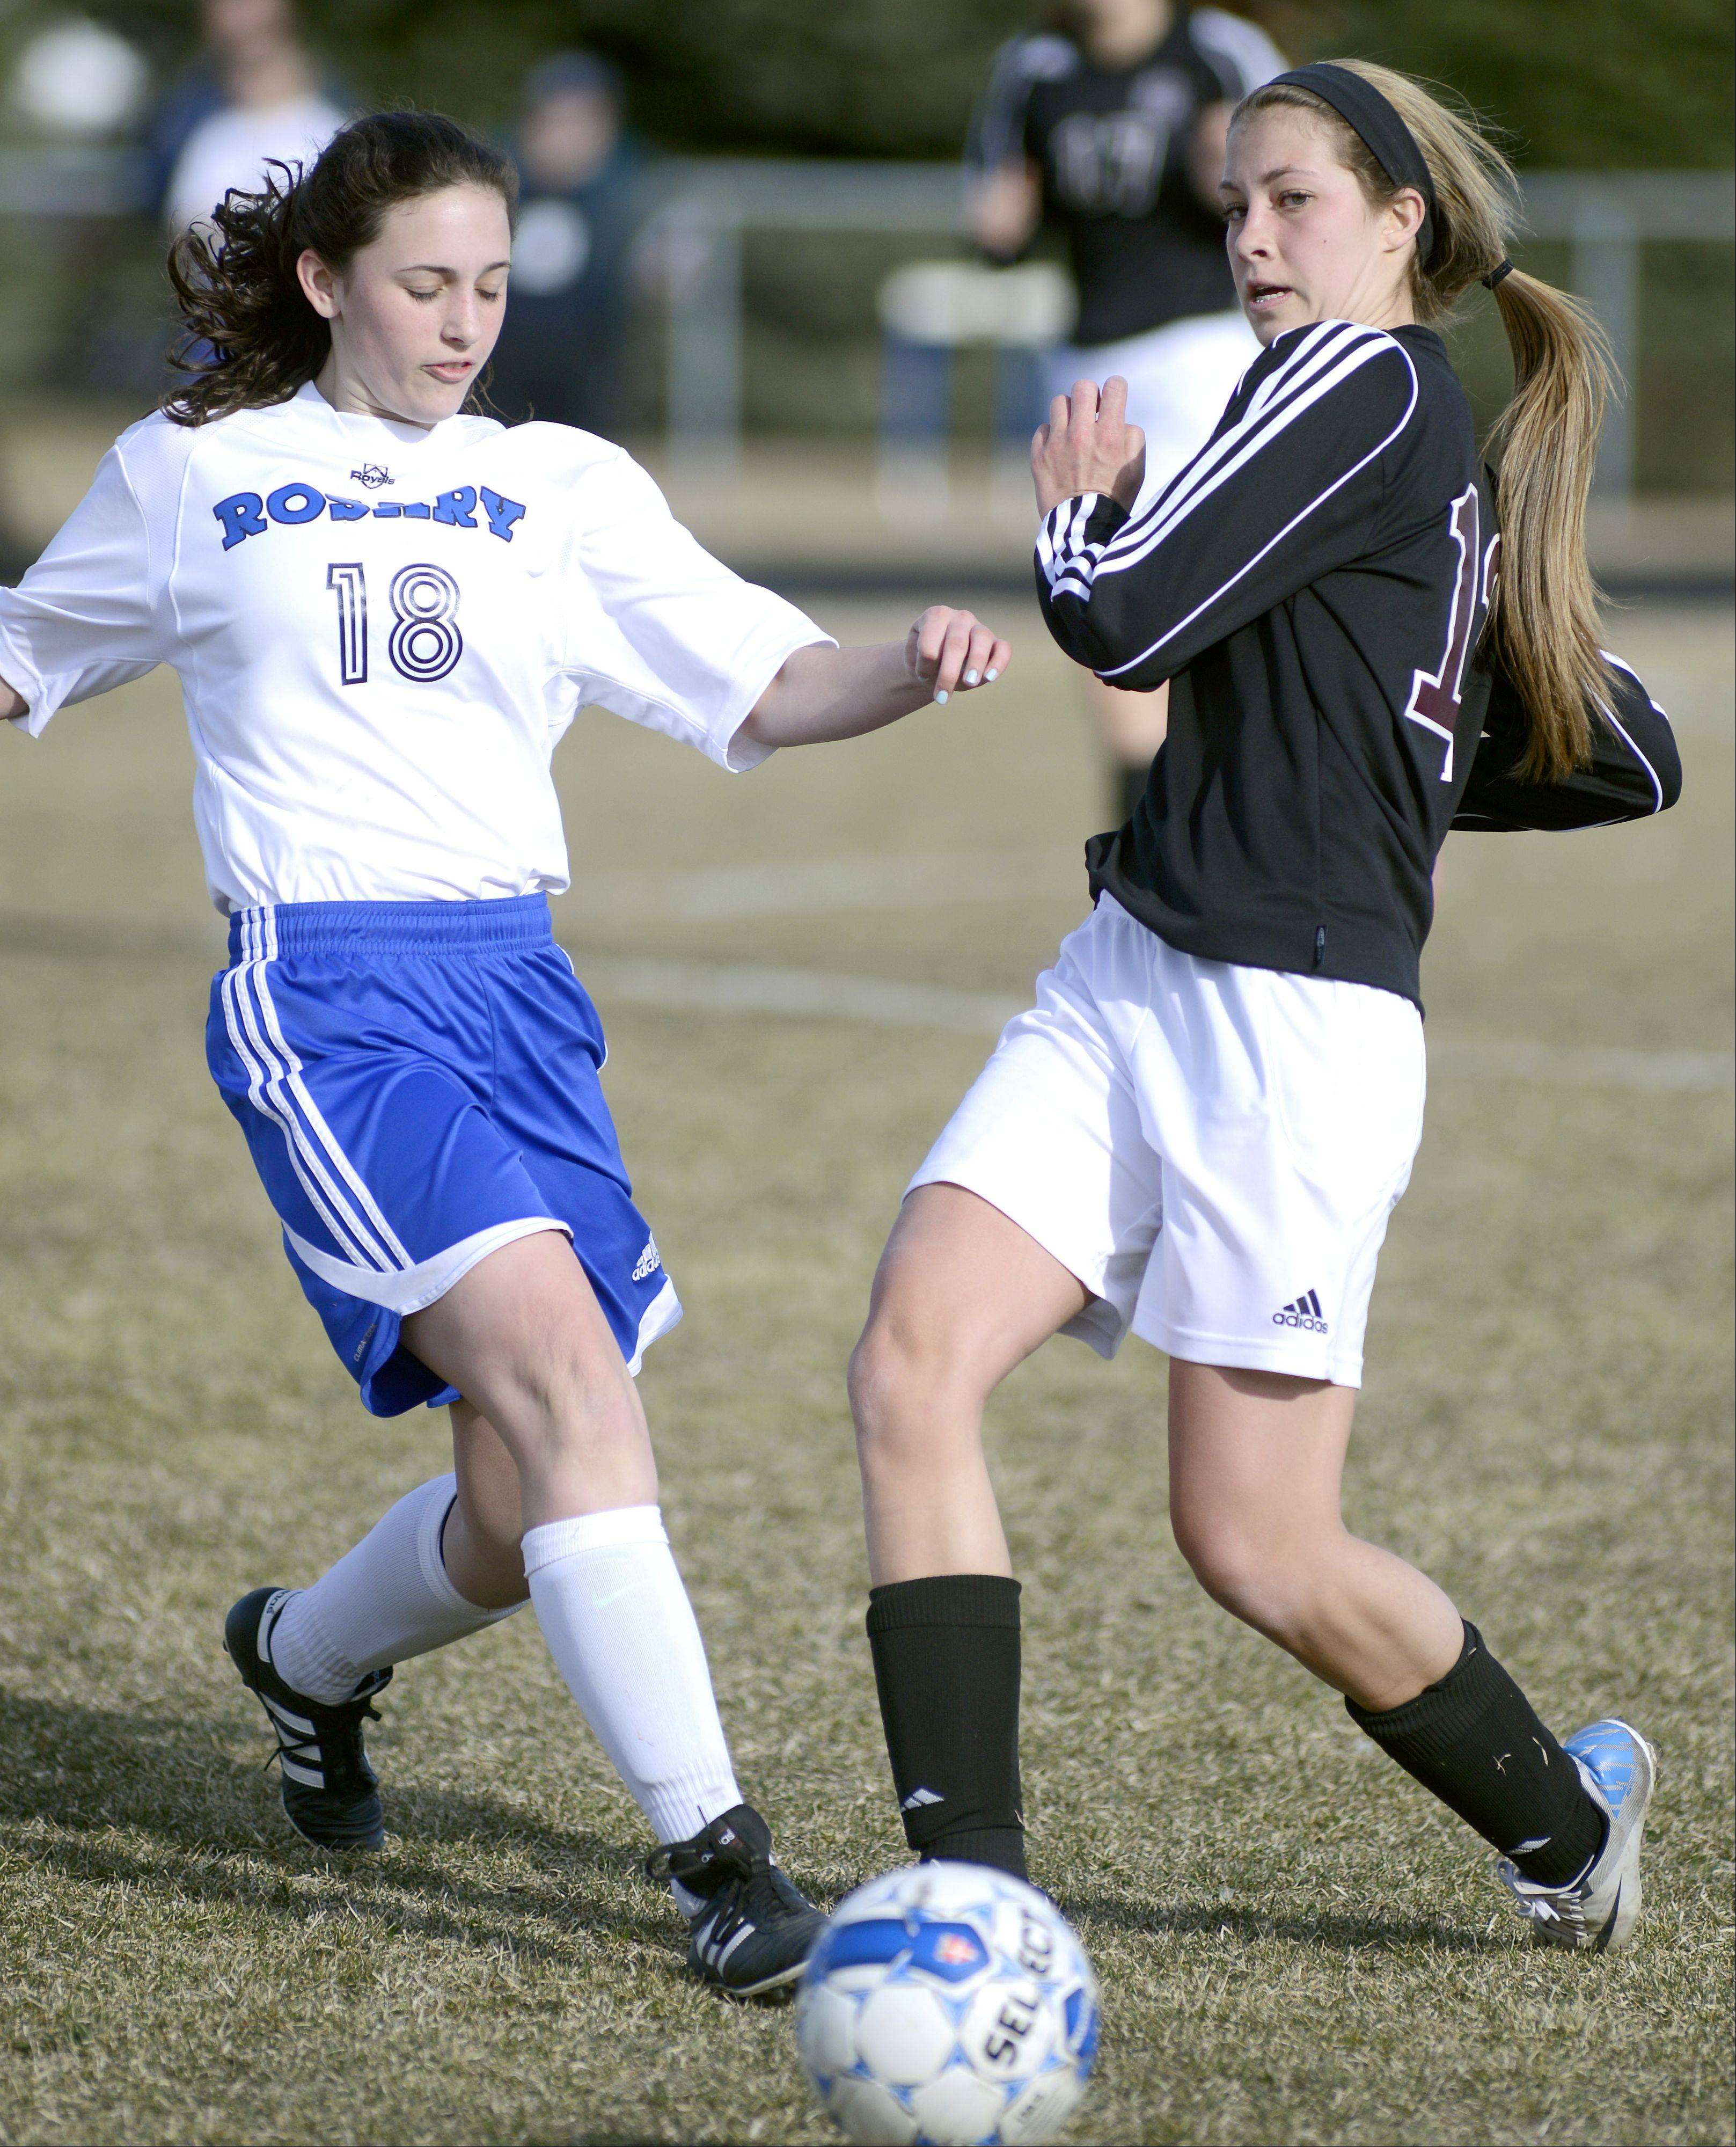 Wheaton Academy's Emily Mascari kicks the ball before Rosary's Anna Sheen can get to it in the first half on Wednesday, April 3.